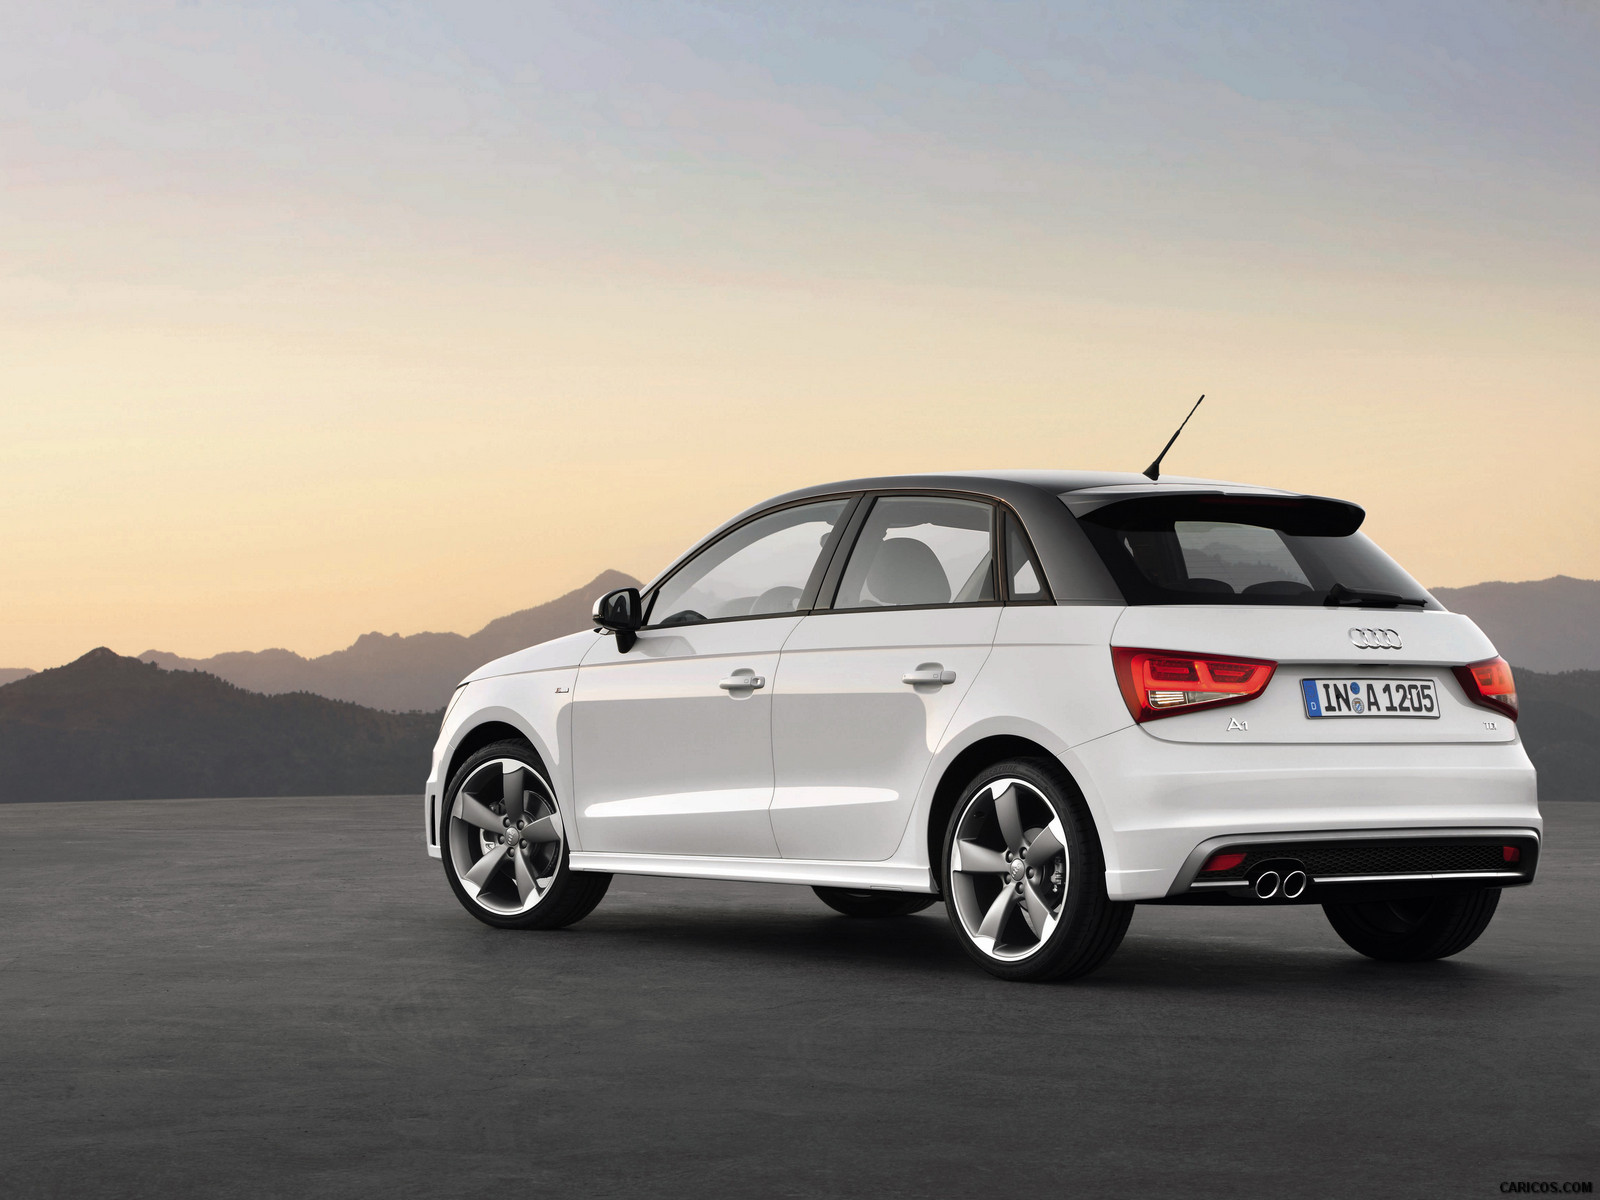 1600x1200 - Audi A1 Wallpapers 22